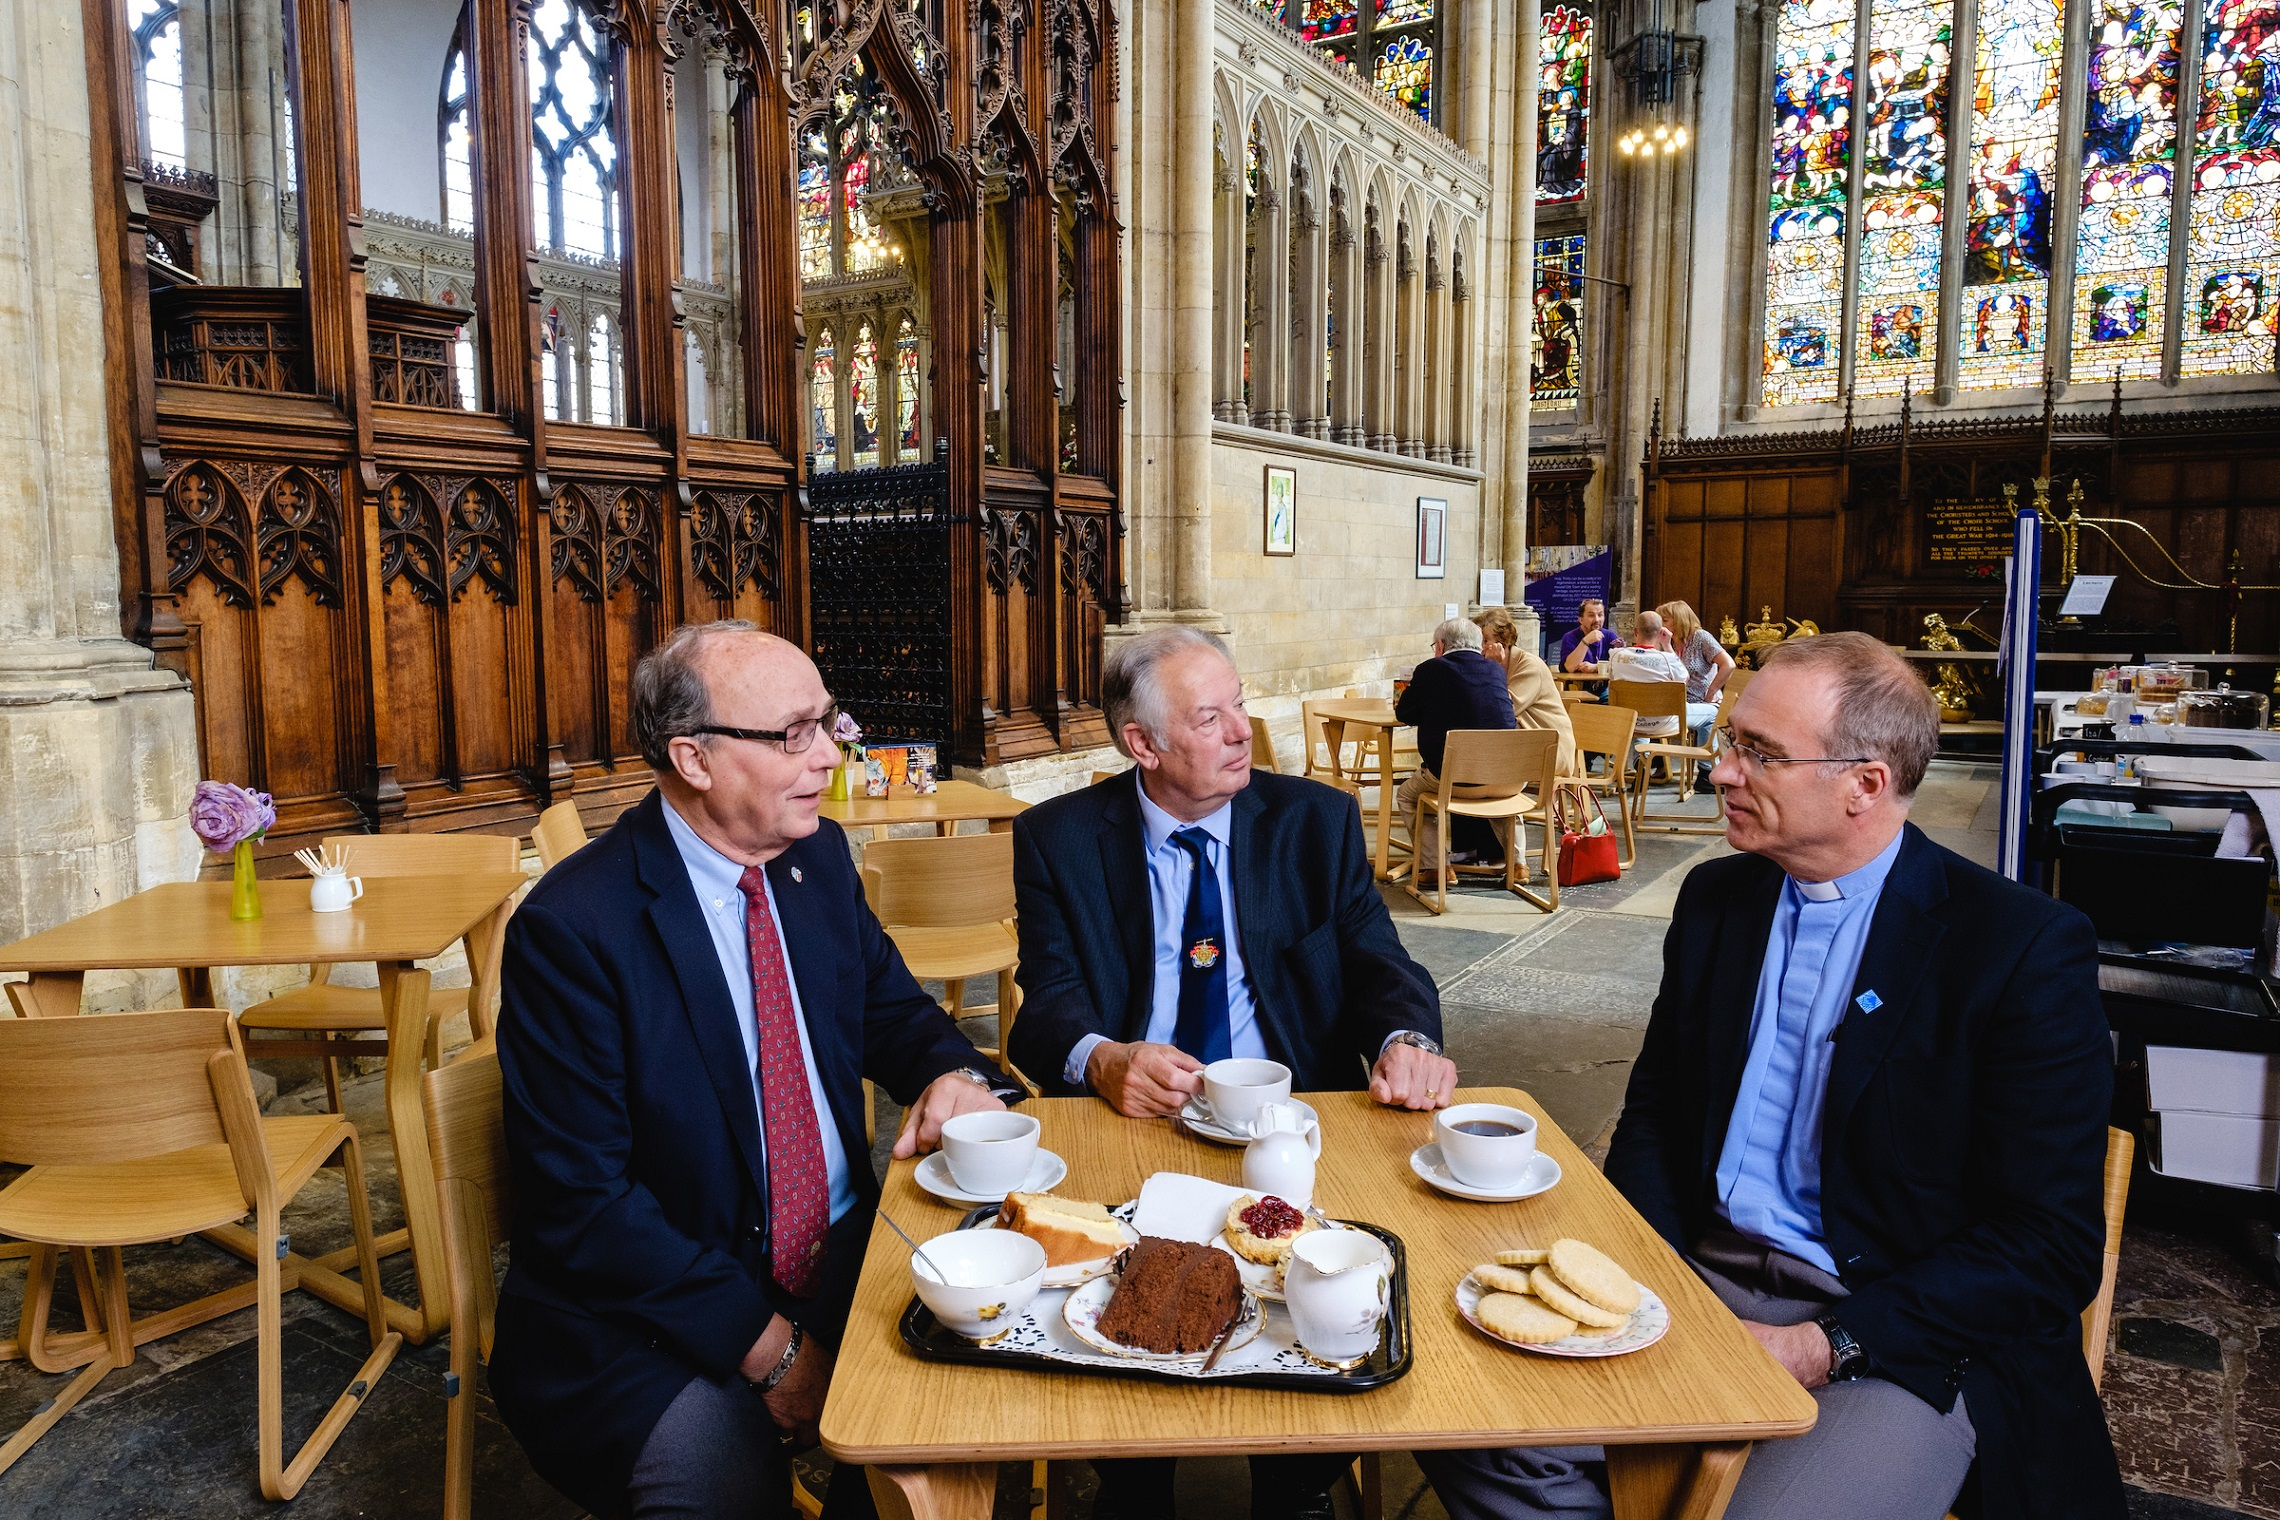 Hull Minster is aiming to raise £100,000 from the dedication of new seating. Robin Mason, from the Rotary Club of Hull, left, and Captain Dennis Robinson, of Trinity House, pictured with Vicar Neal Barnes, are among supporters who have backed the fund-raising campaign